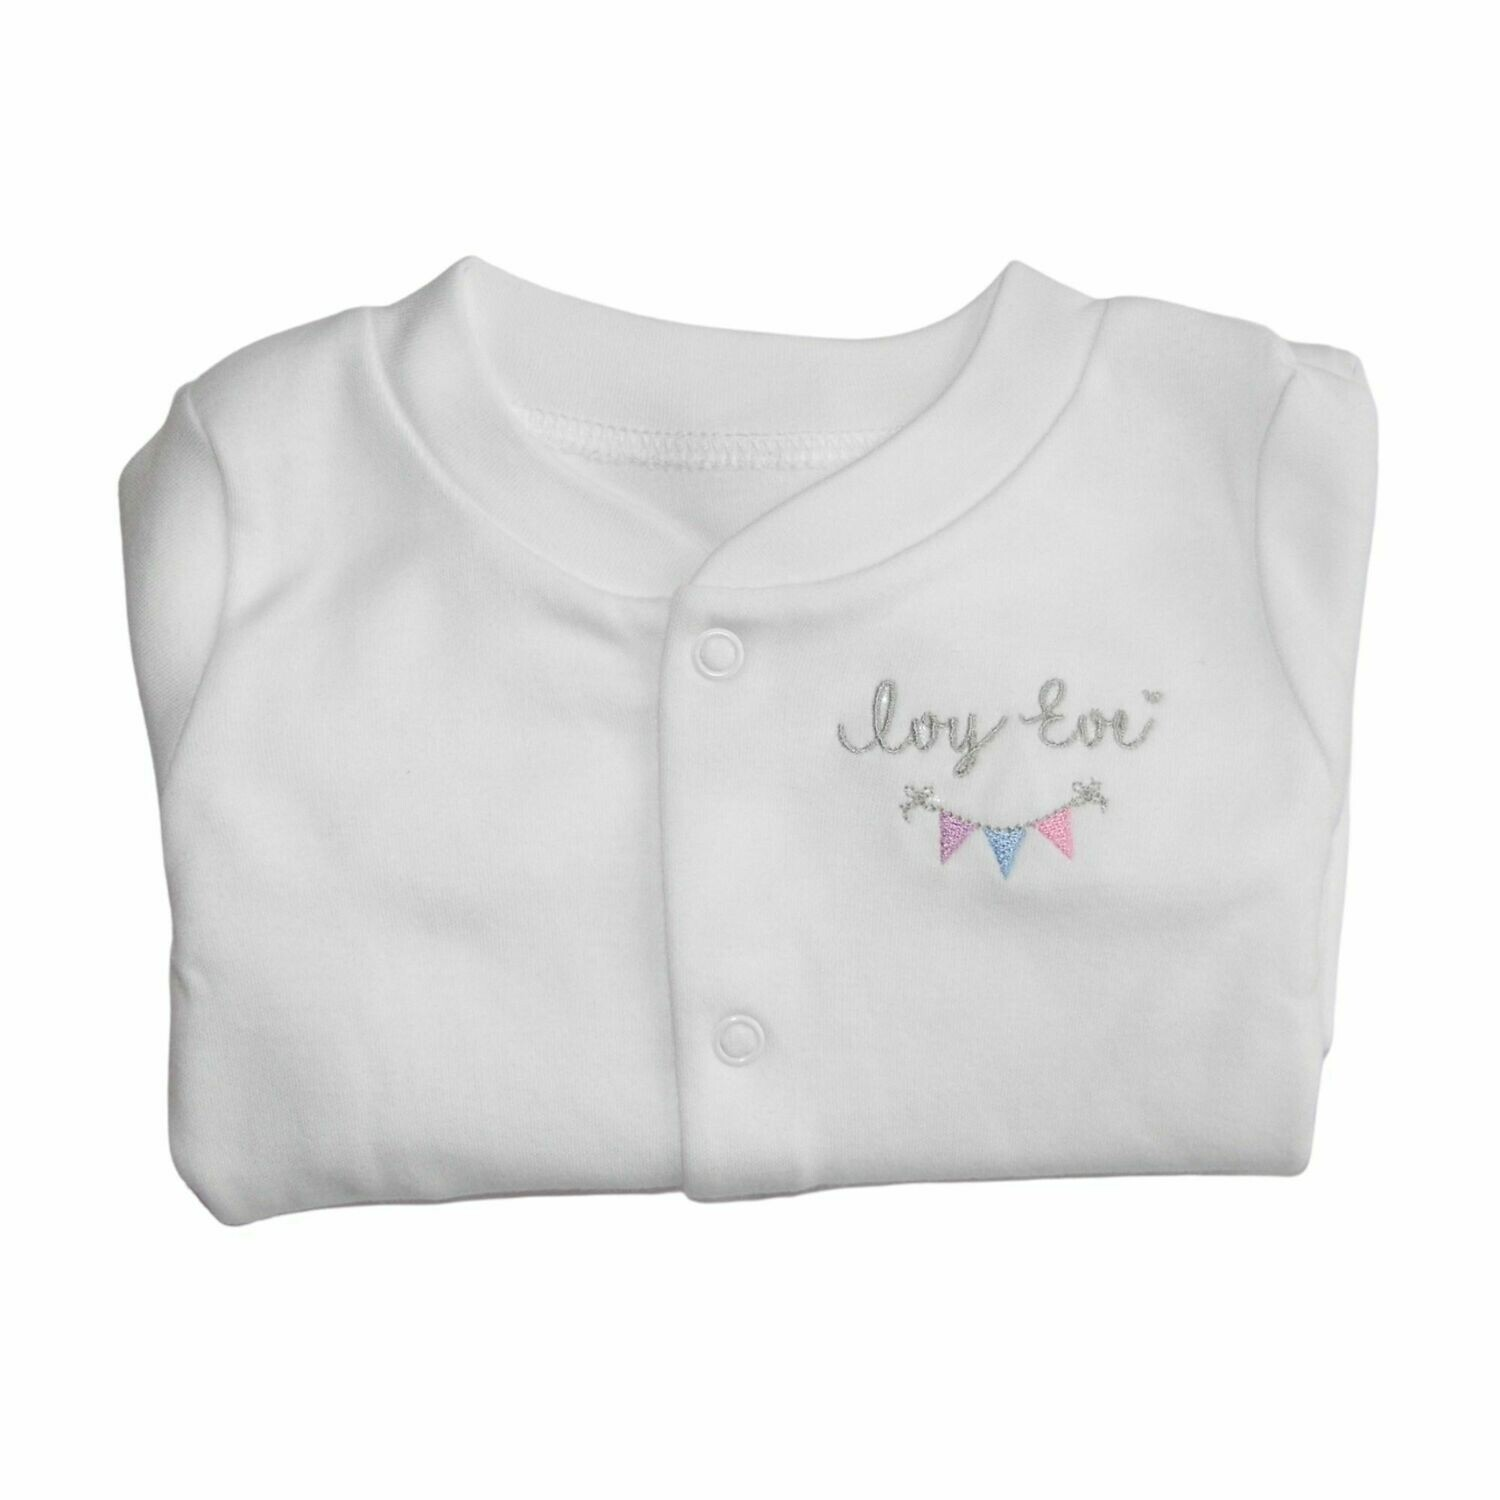 Personalised Baby Sleepsuit with Embroidered Name & Bunting